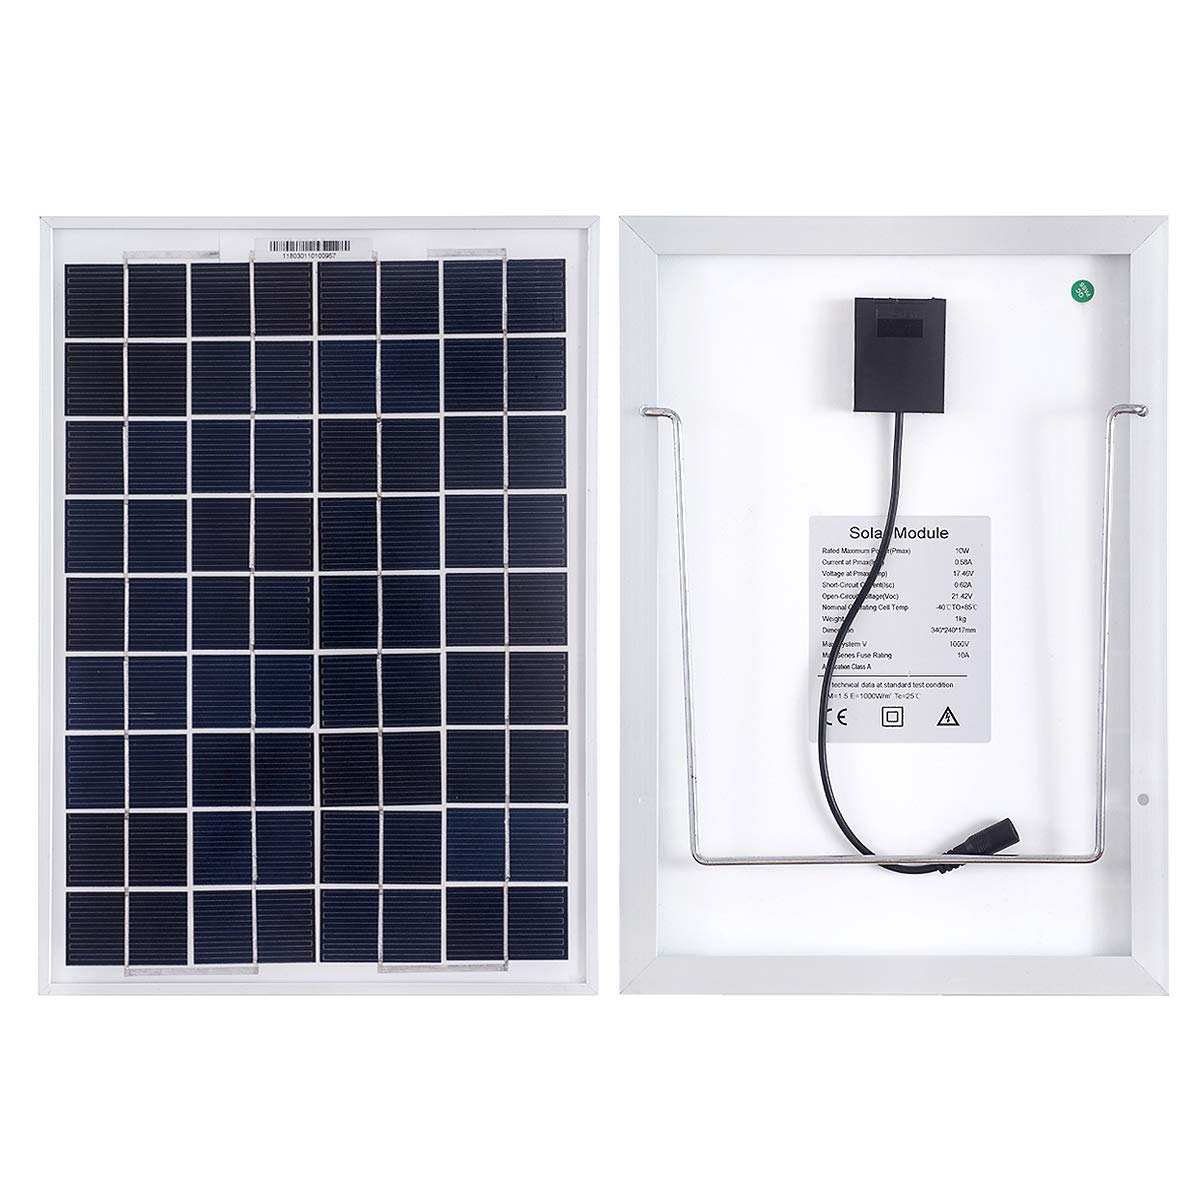 Betop-camp 10W 12V Mono Solar Panels for Cars, Caravans, Campers, Boats-with a 5m Crocodile Clip-Solar Panels with Supports